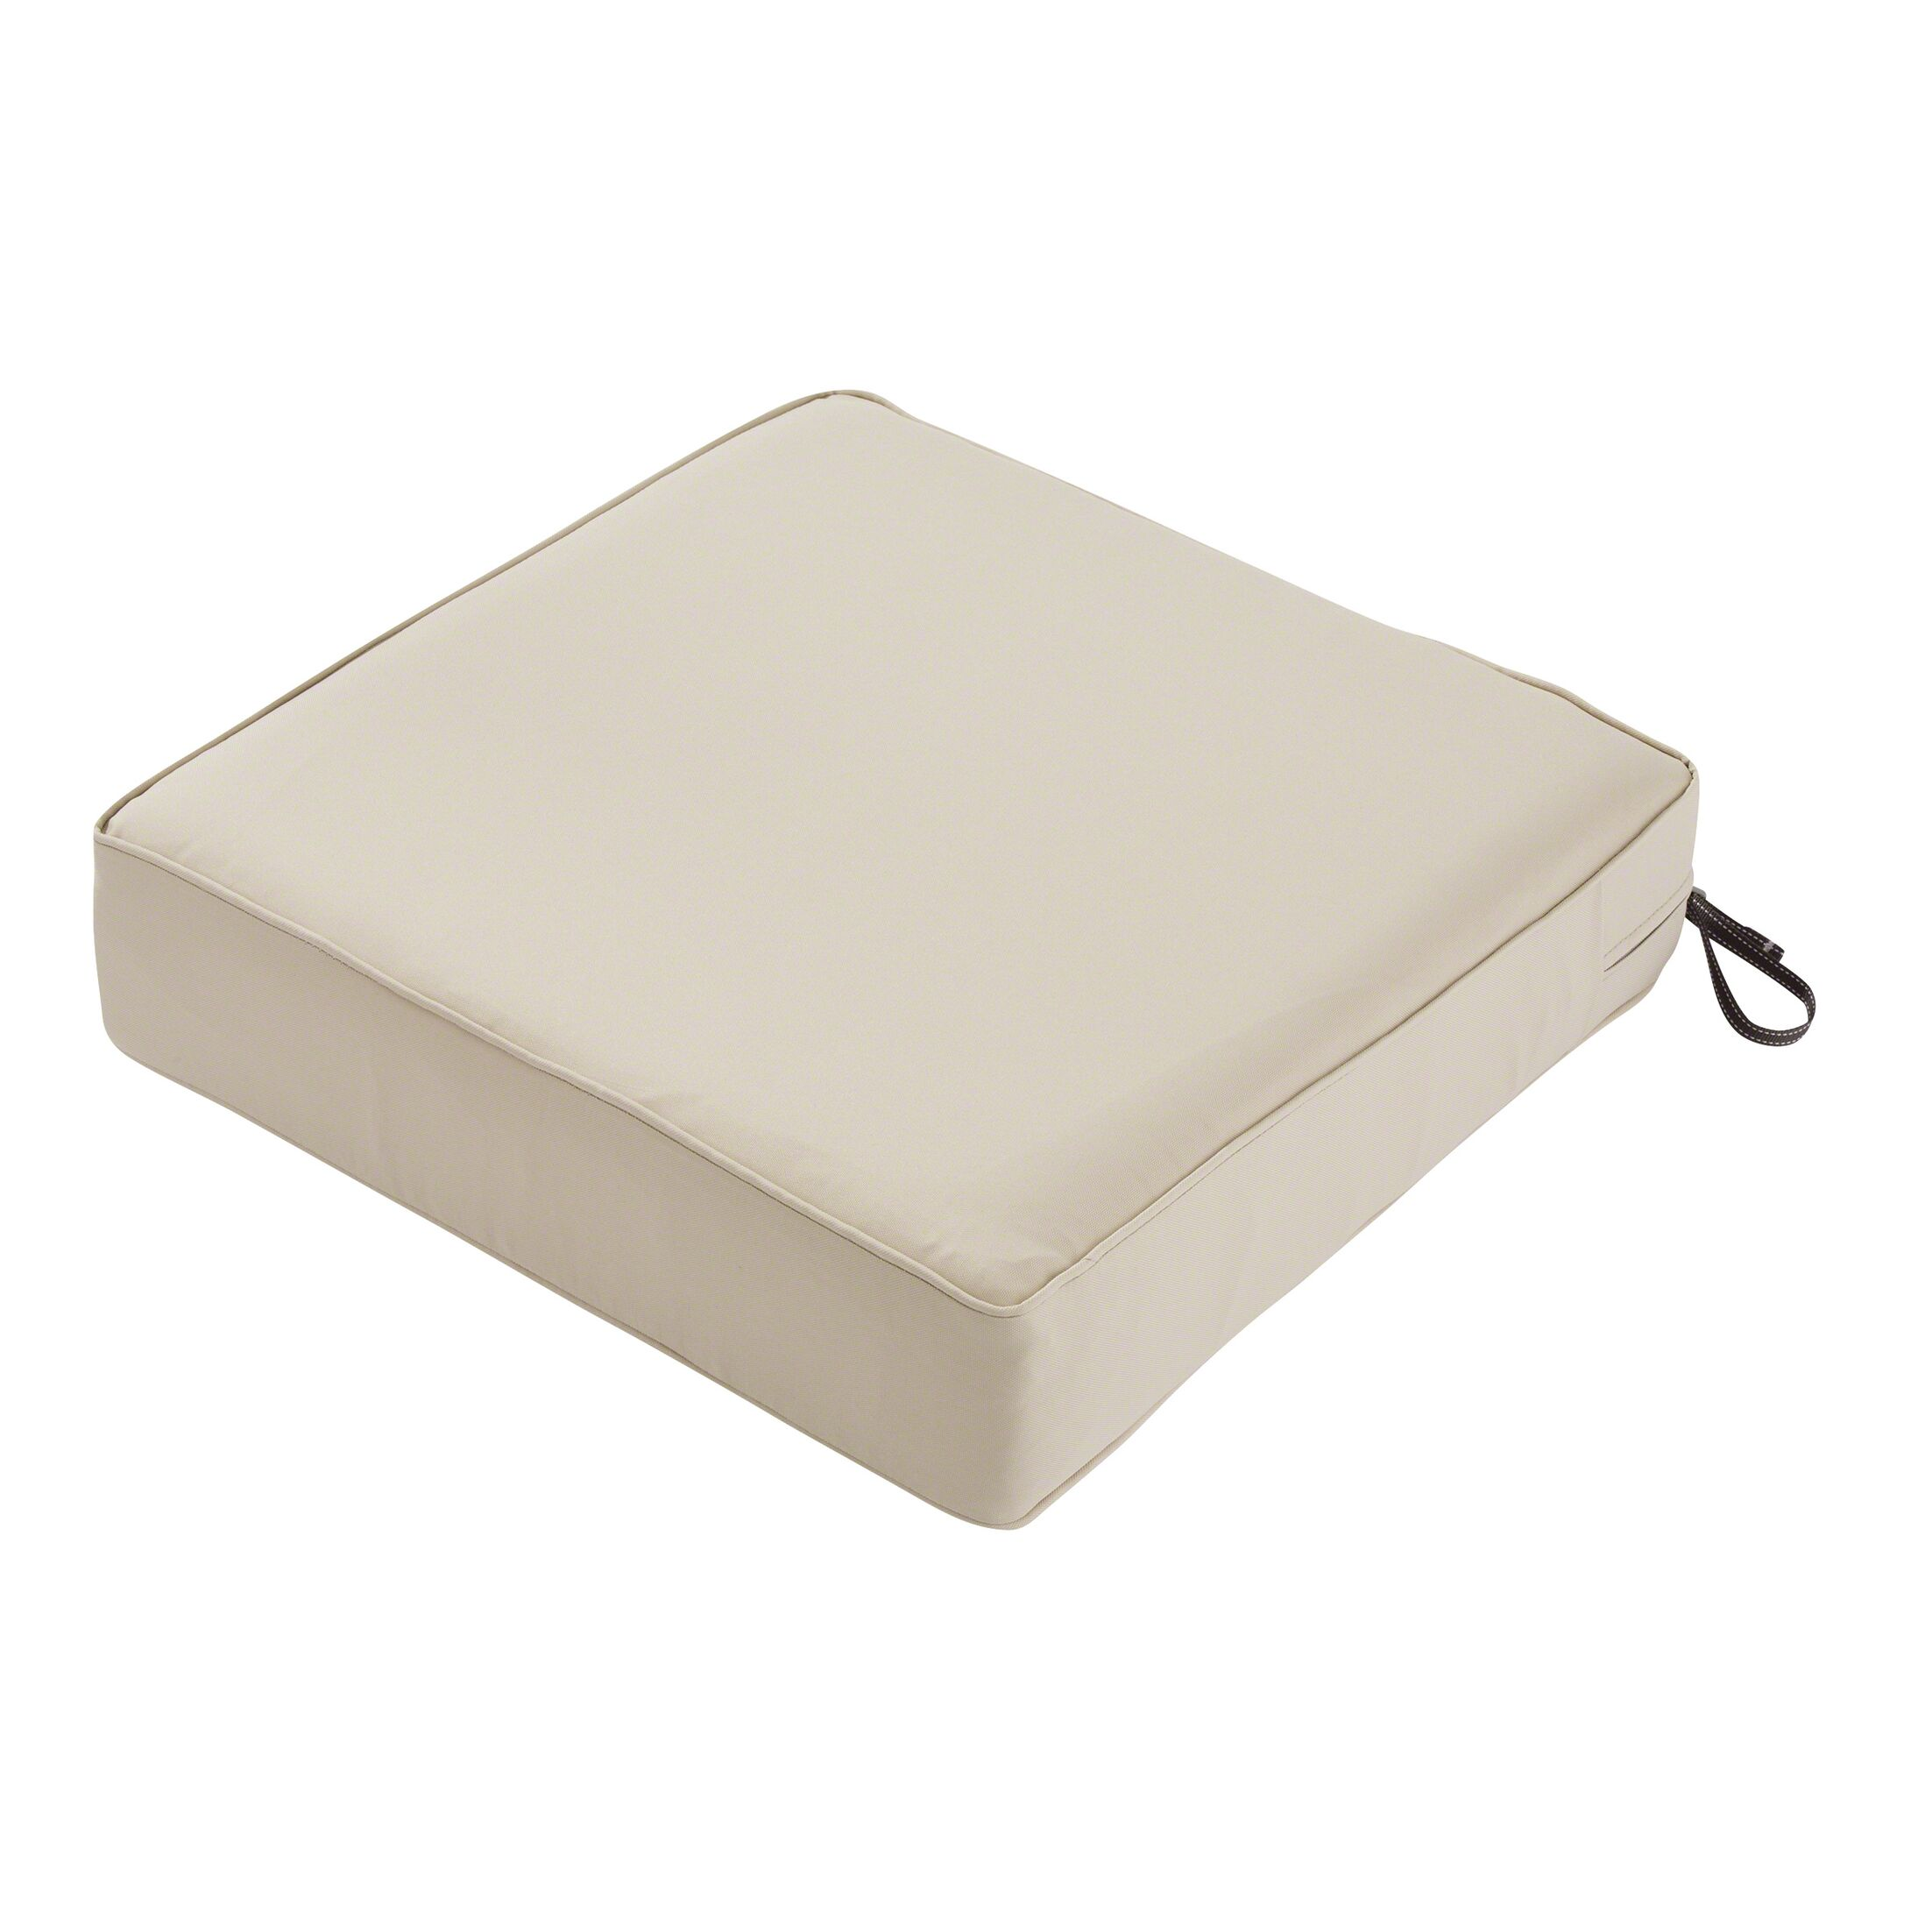 Outdoor Lounge Chair Cushion Size: 5